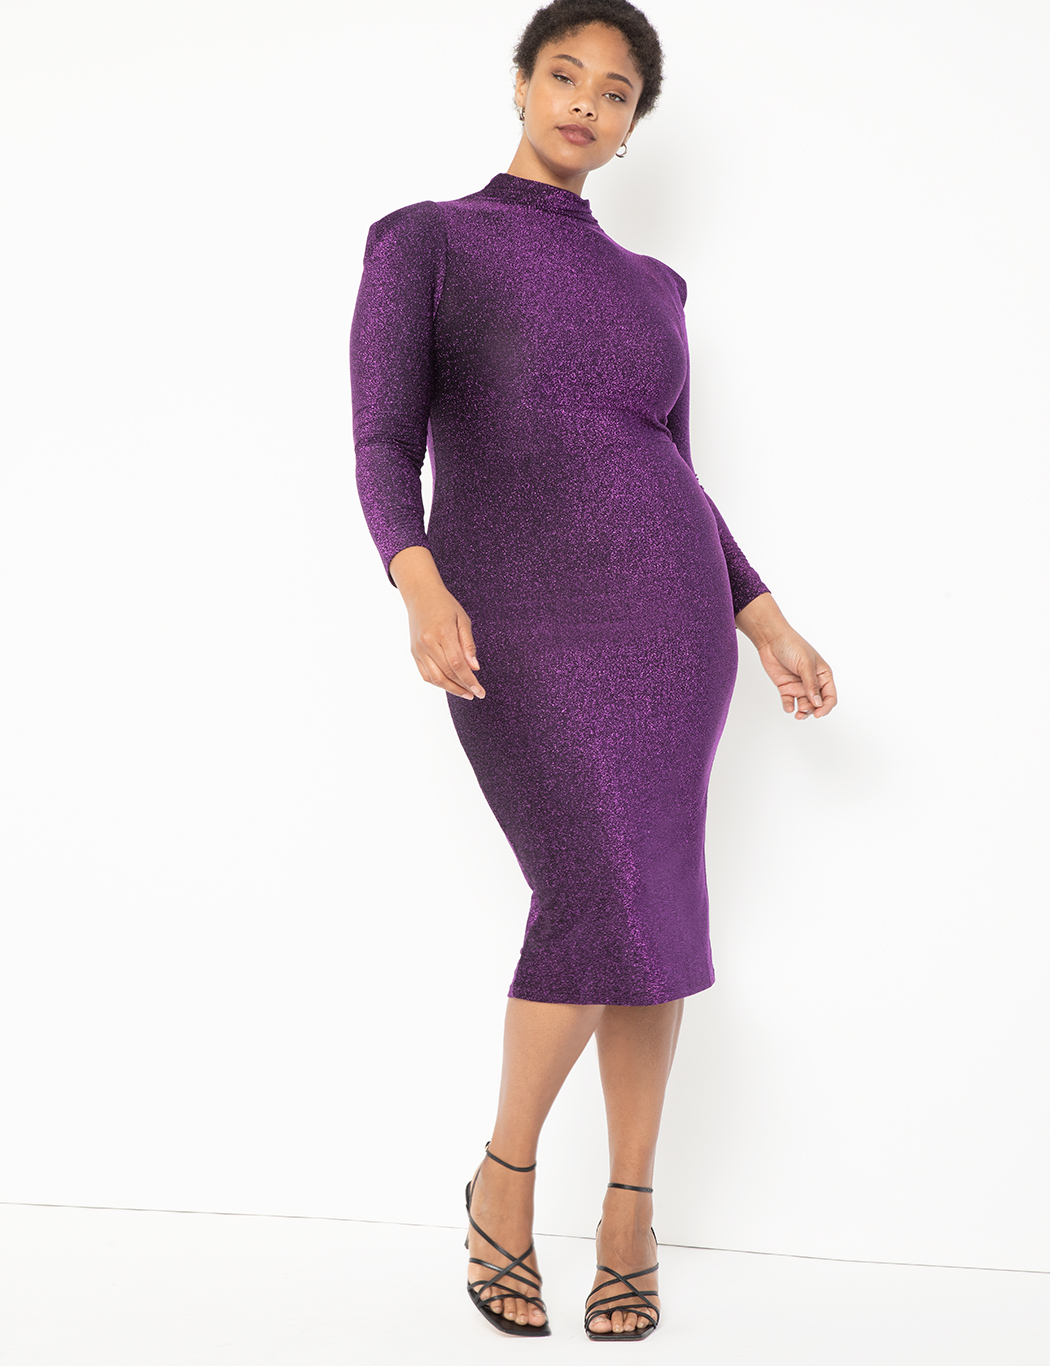 Turtleneck Bodycon Dress 7